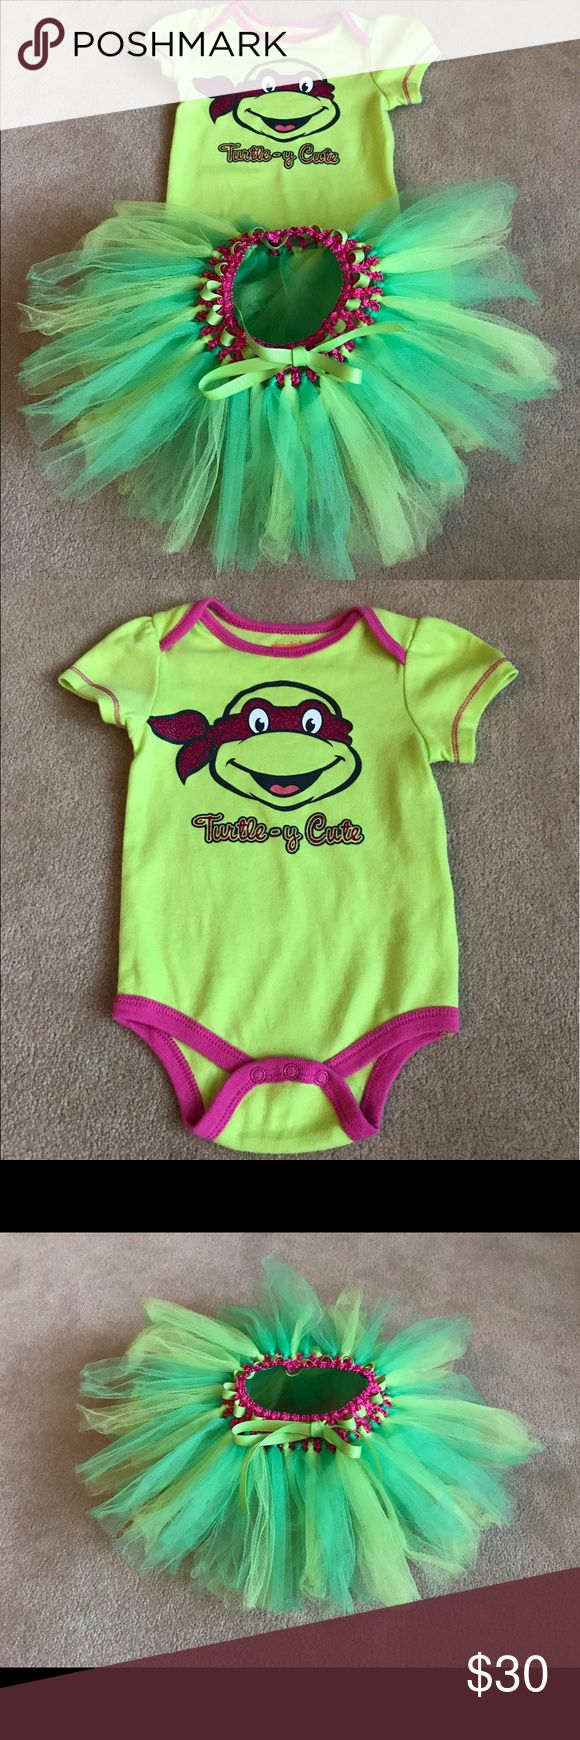 3-6 Months Ninja Turtle Outfit Would be adorable dressed up for a Ninja Turtle-themed birthday party!  We used once for that! Janie and Jack Matching Sets